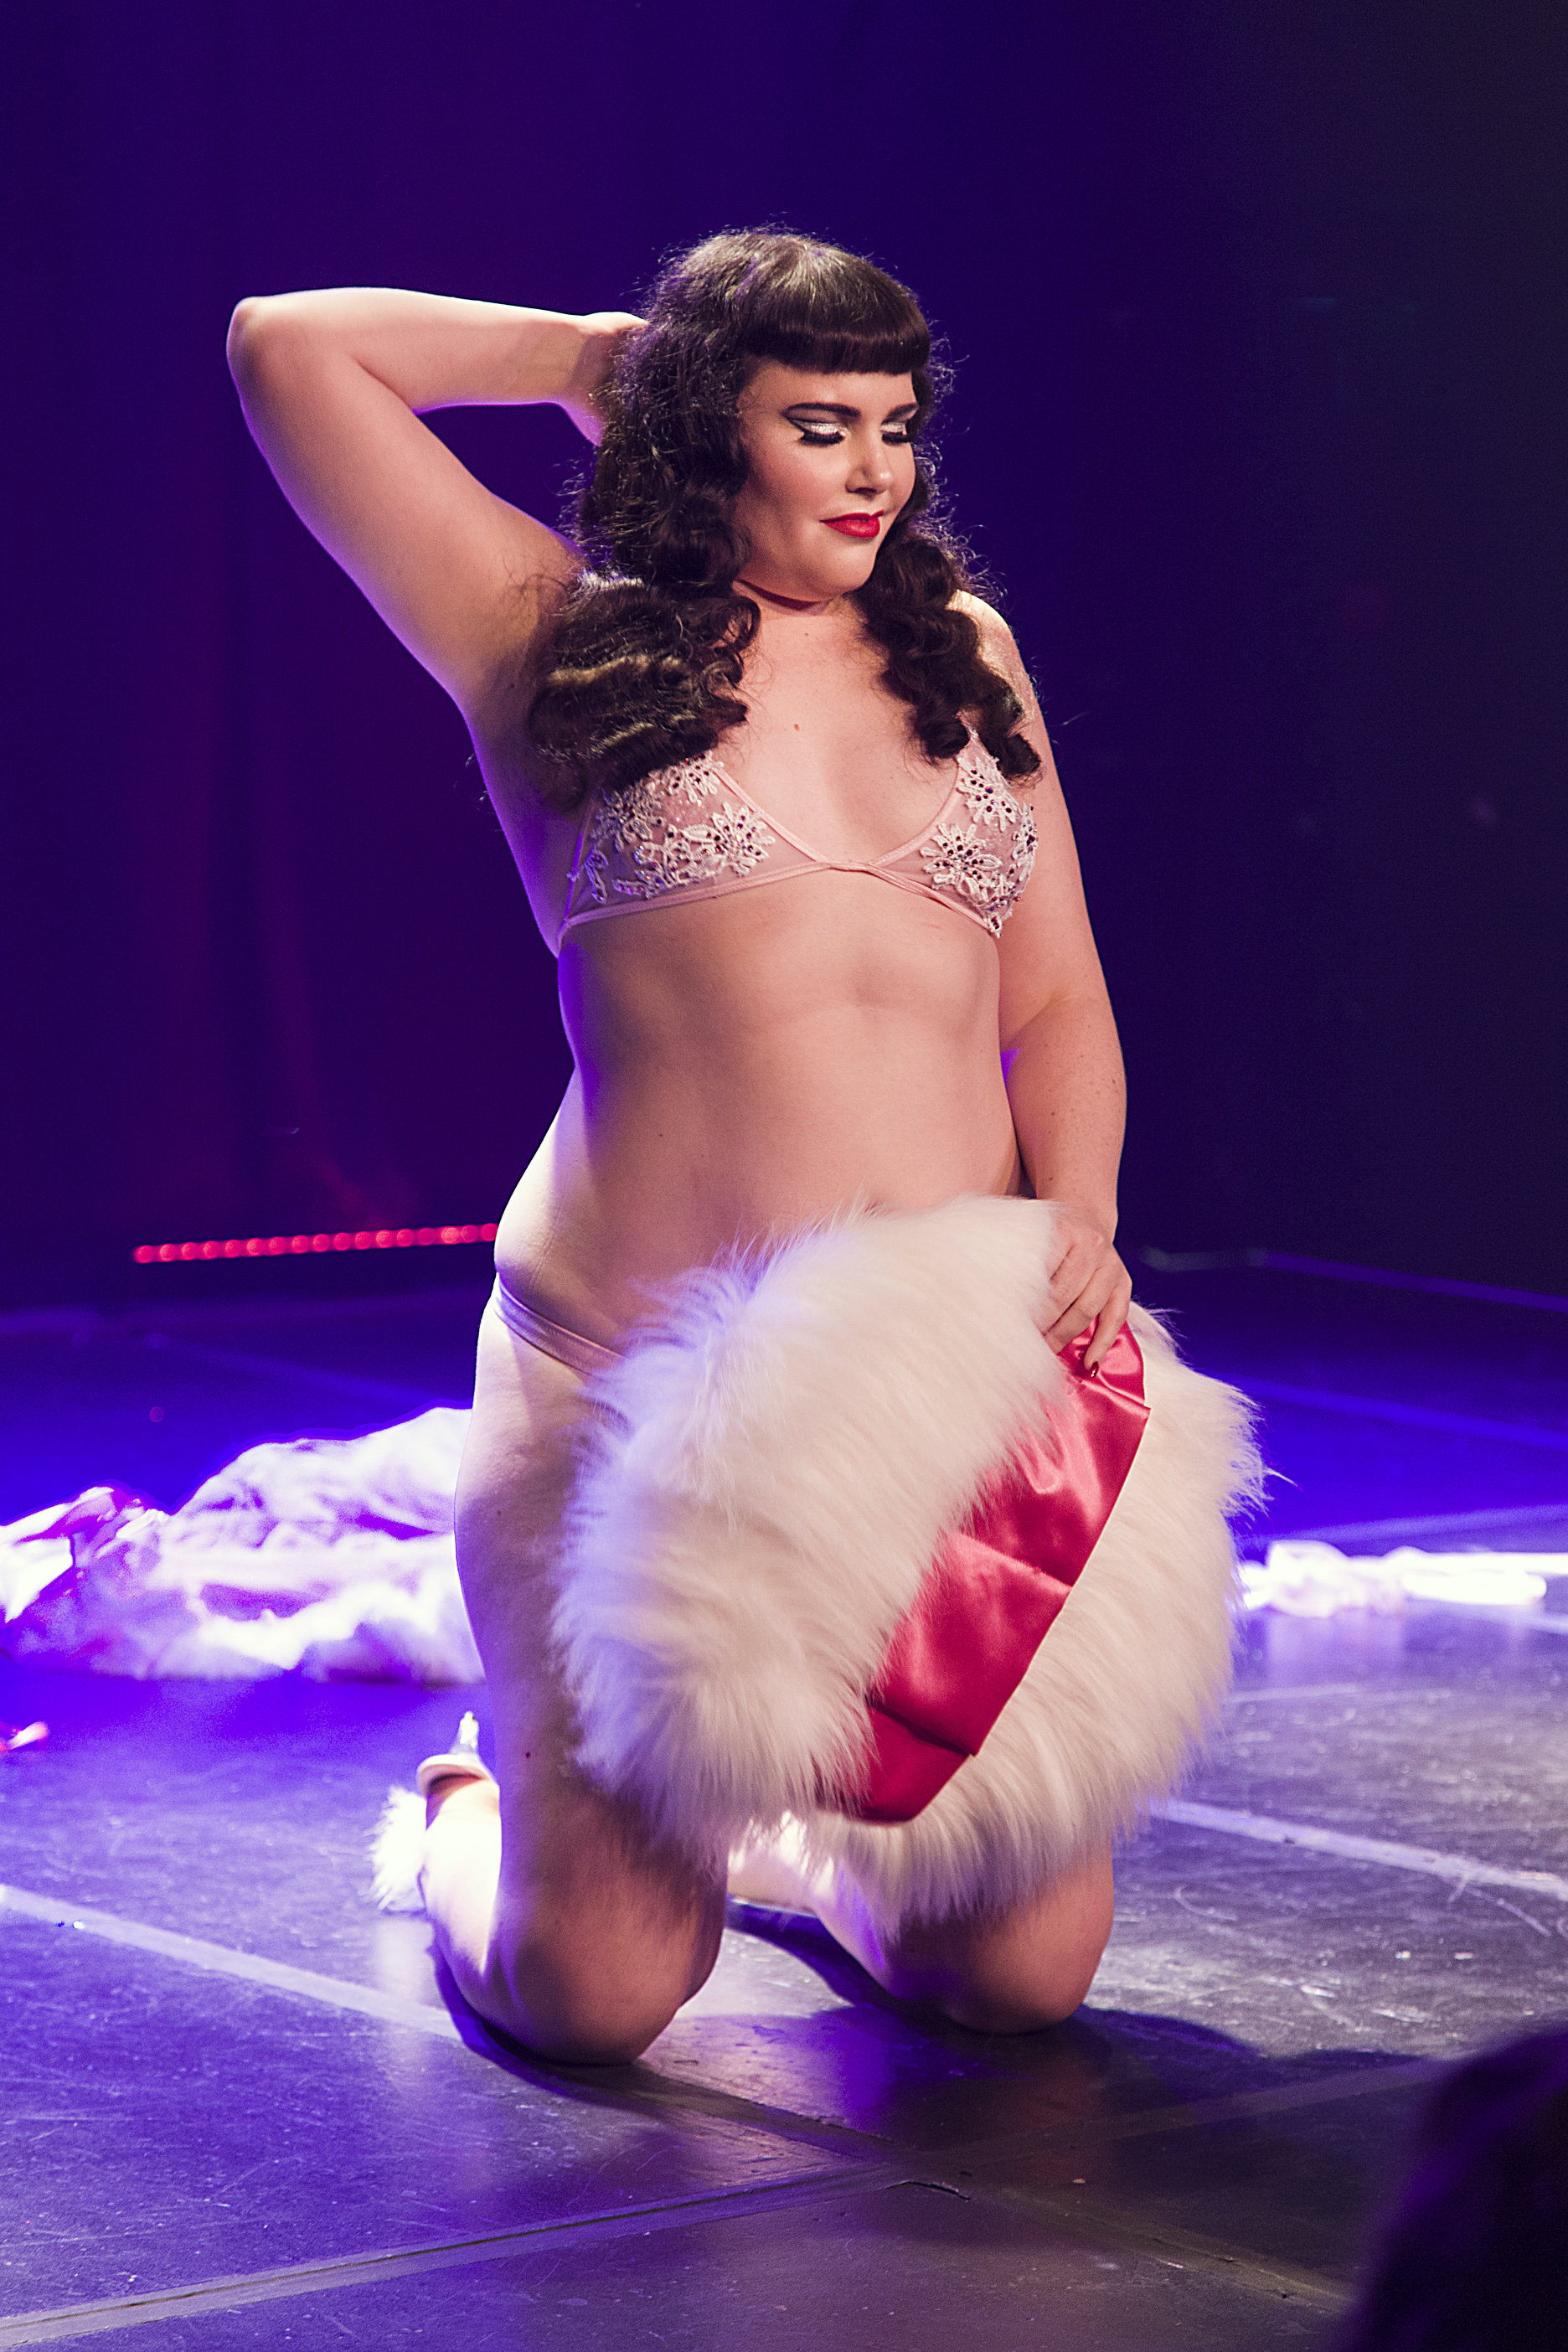 Photo by David Gatt | Taken at the Bombshells Ball produced by the Bombshell Burlesque Academy